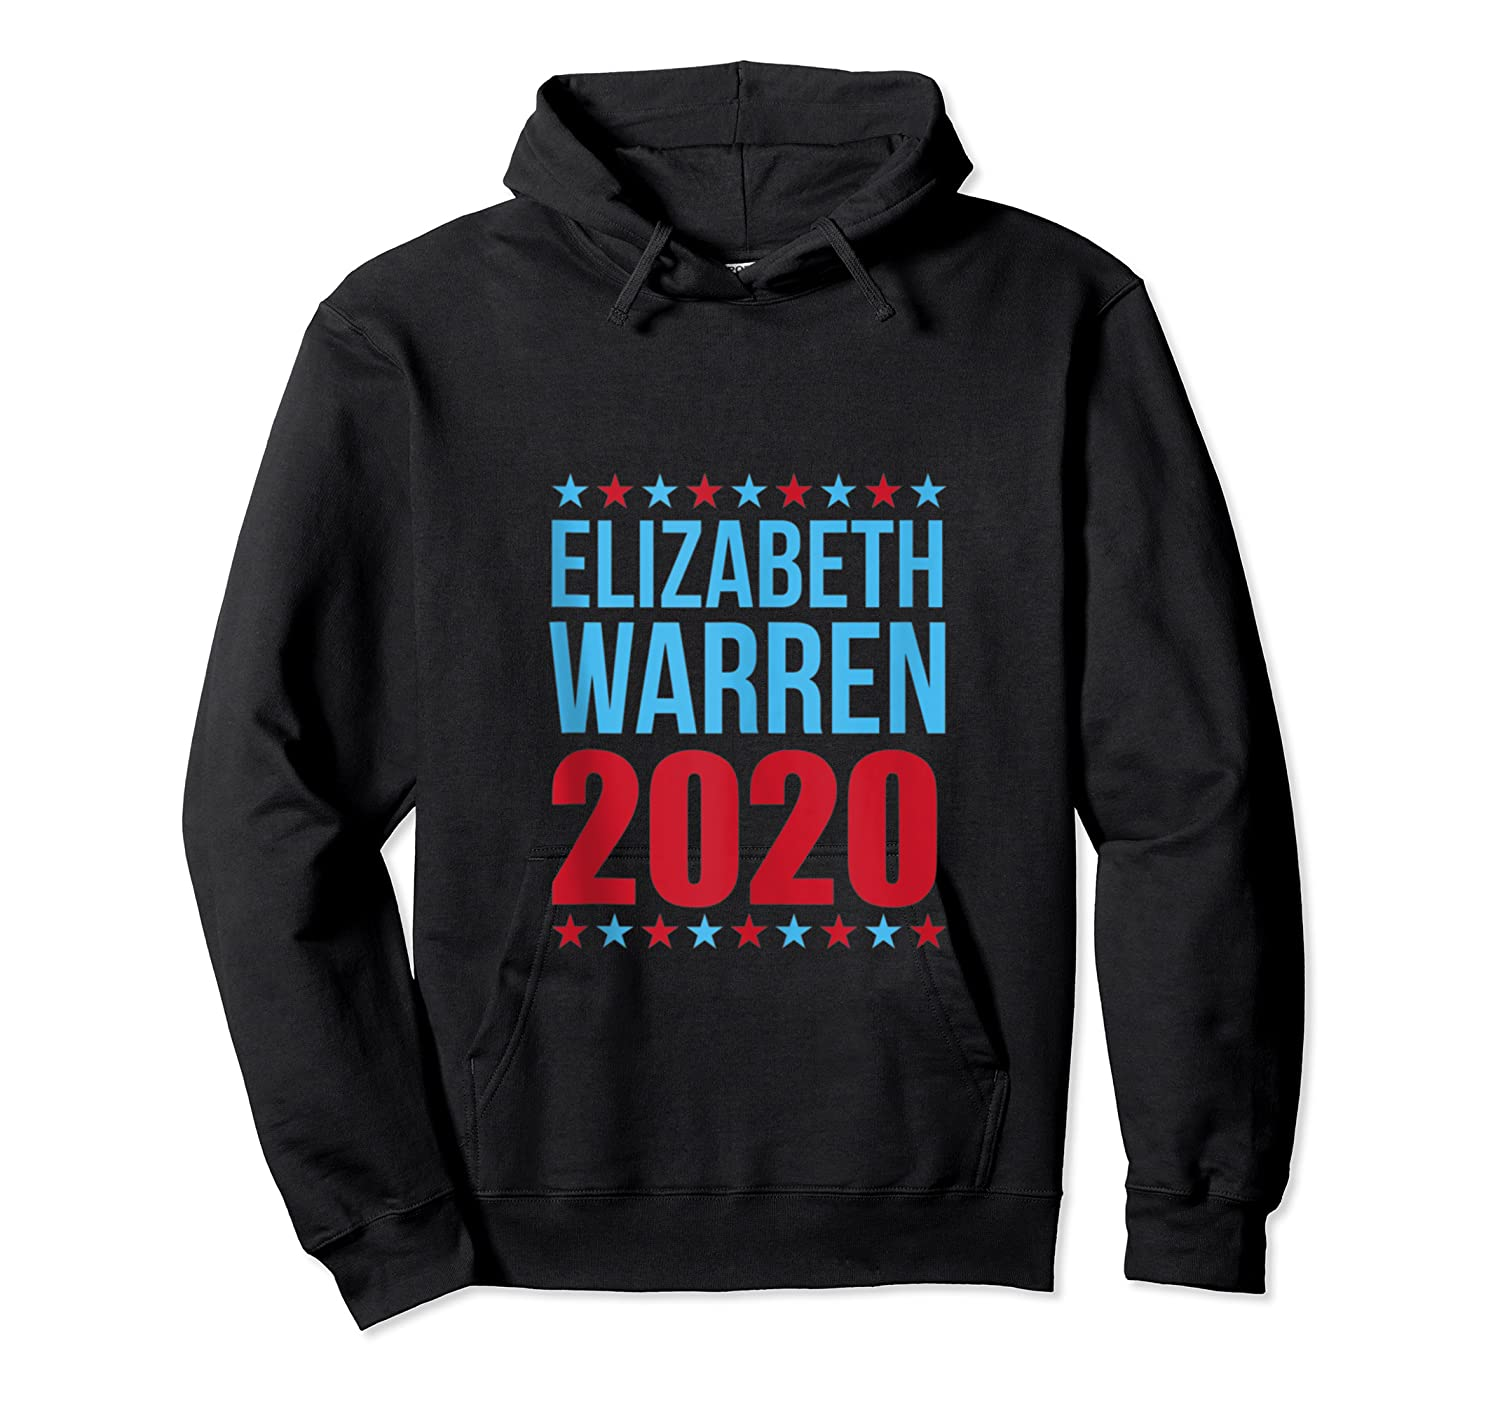 Elizabeth Warren For President 2020 Election S Day Tank Top Shirts Unisex Pullover Hoodie